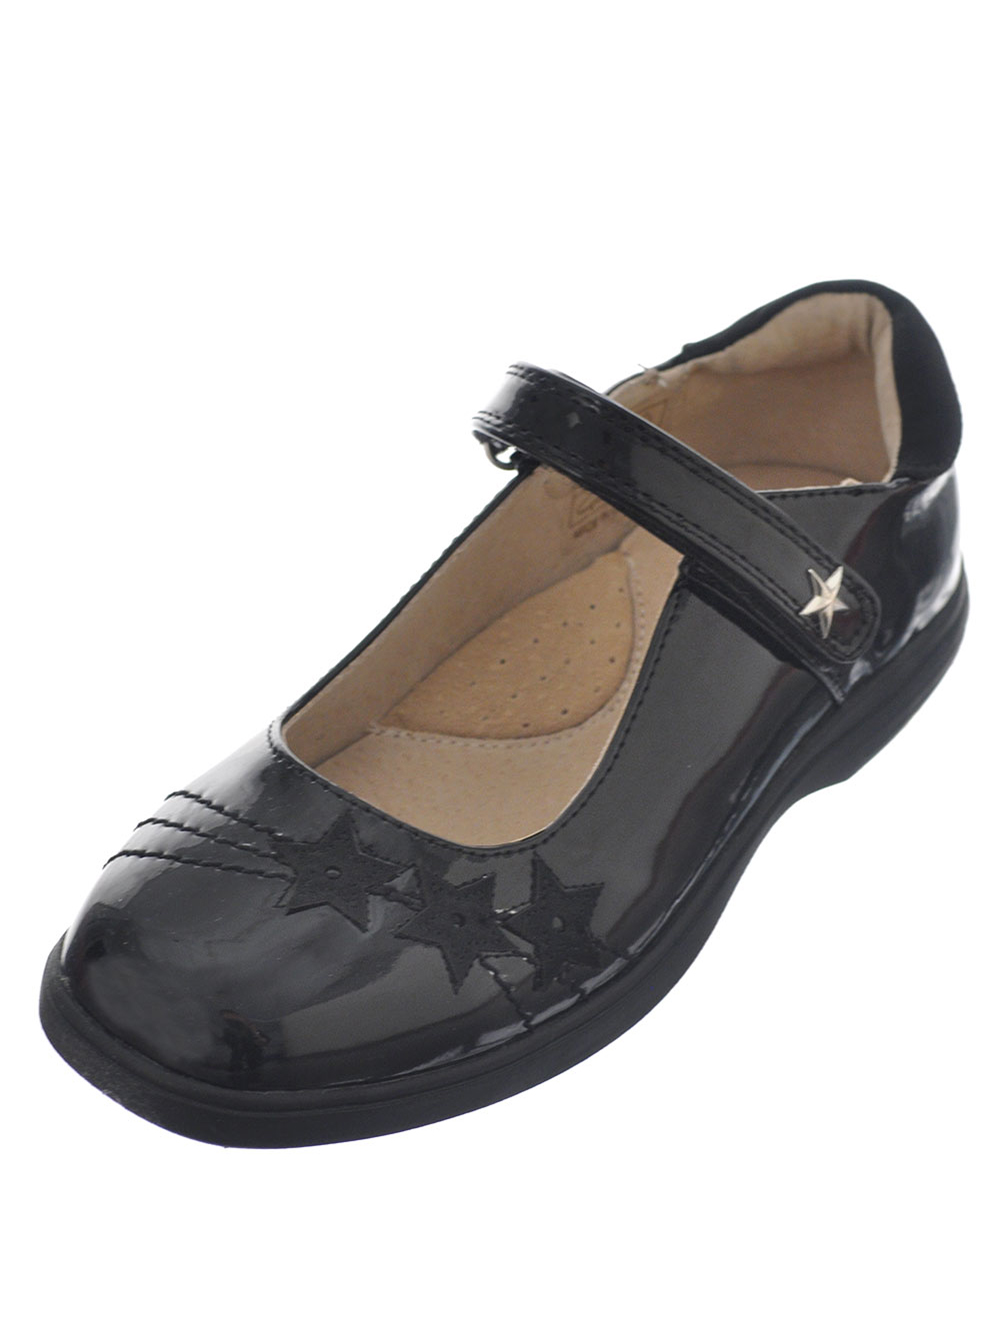 Image of Easy Strider Girls Star Shine Mary Janes Youth Sizes 13  4  black 1 youth